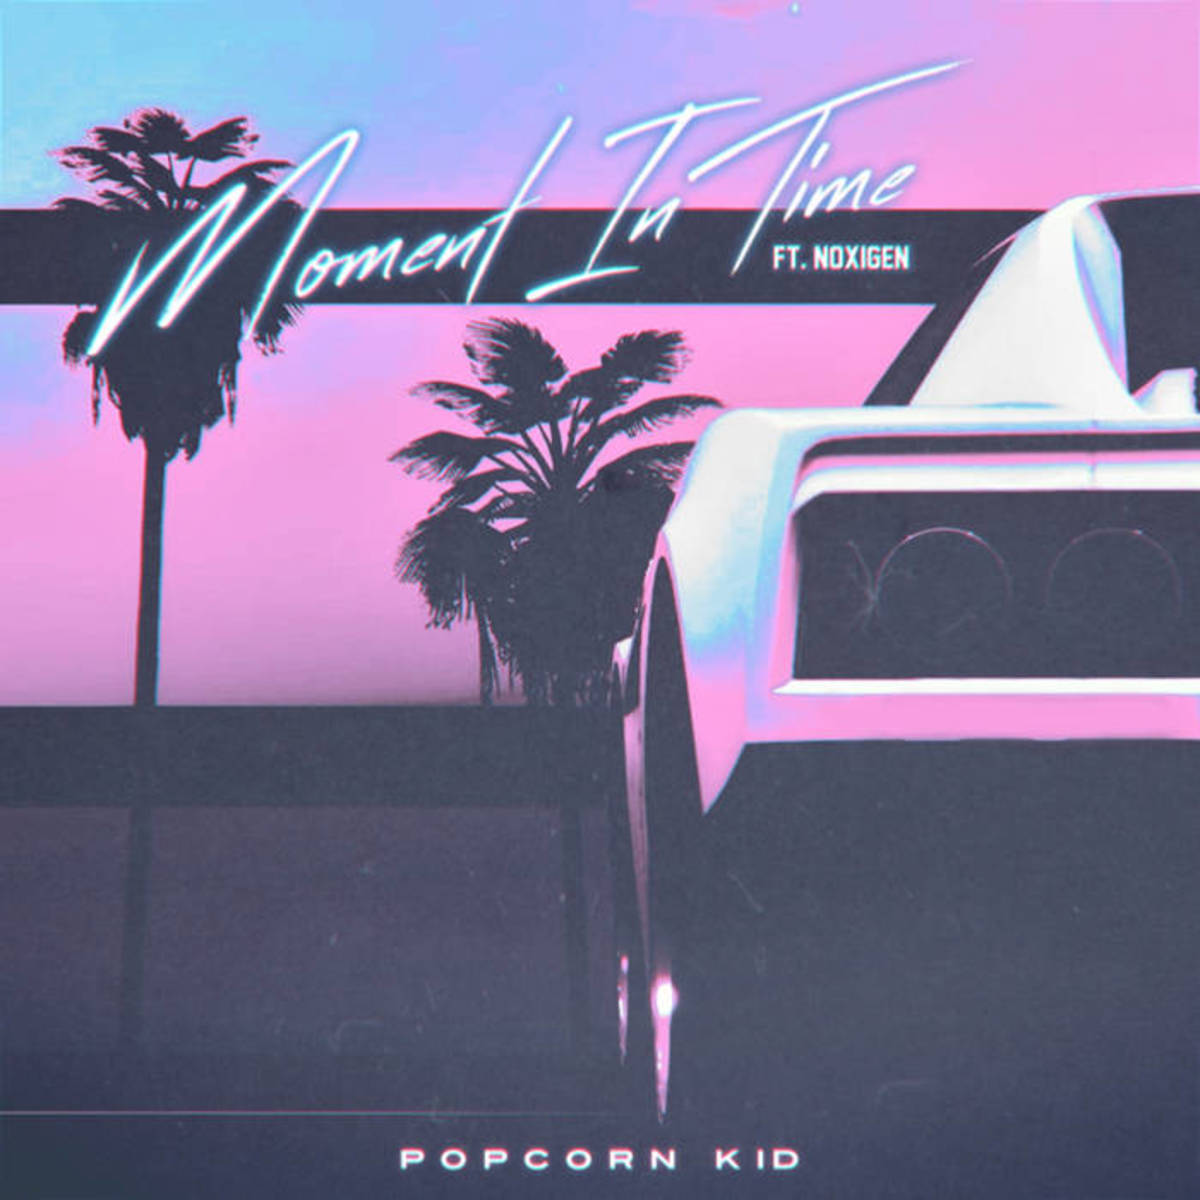 synth-single-review-moment-in-time-by-popcorn-kid-and-noxigen